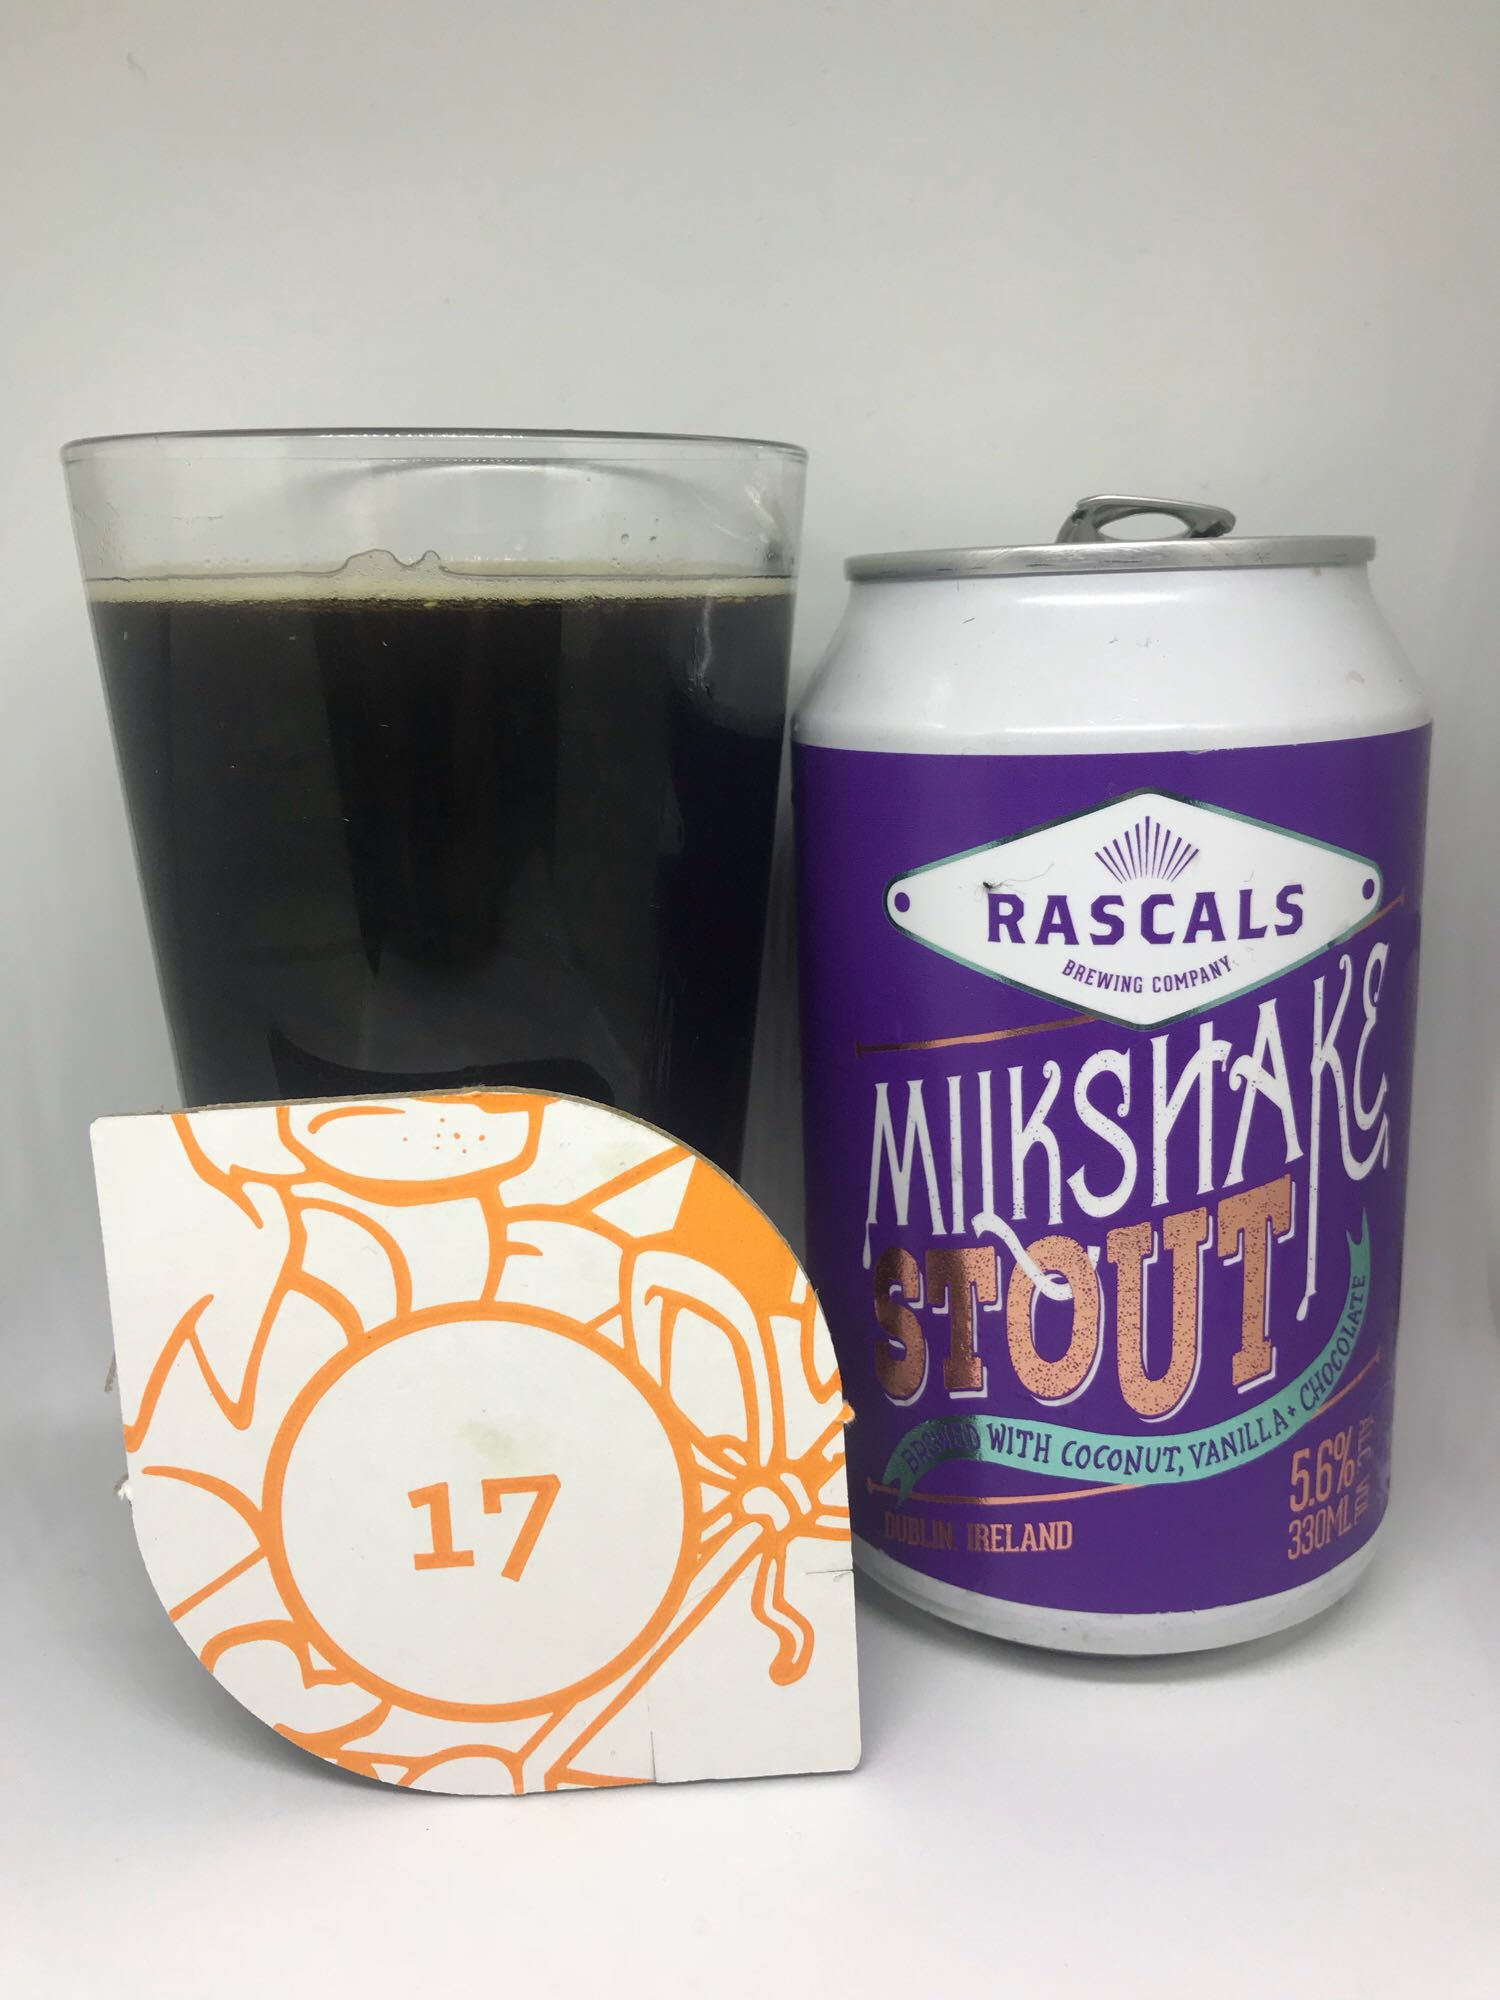 Day Seventeen: Milkshake Stout - Milk Stout 5.6% // Rascals Brewing Co.  - Four dark beers on the bounce now and another brewery I'm yet to try anything from in the shape of Dublin's Rascals Brewing Co. I was fully on board when I saw the name of the beer but when I spied 'coconut' as one of the ingredients, my heart sank a little. I may start a one man crusade to keep coconut out of beer because it is SICK and WRONG.Luckily, the biggest flavour here is vanilla so it's not as bad as I was expecting. It's very, very sweet which is to be expected in a beer called 'Milkshake Stout' and is pretty enjoyable. The vanilla dominates but then the dreaded coconut rears its head at the end and takes it down a notch for me. Decent but nothing that's going to set the world alight.